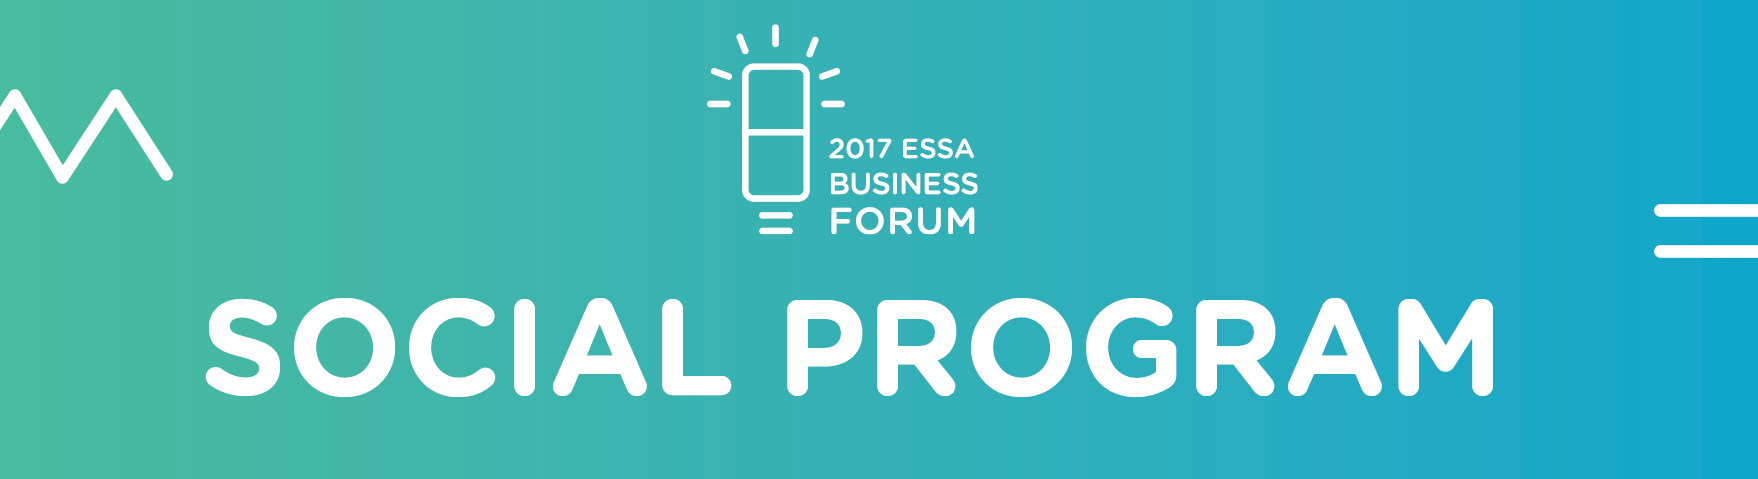 ESSA Business forum featured image banner_thin3